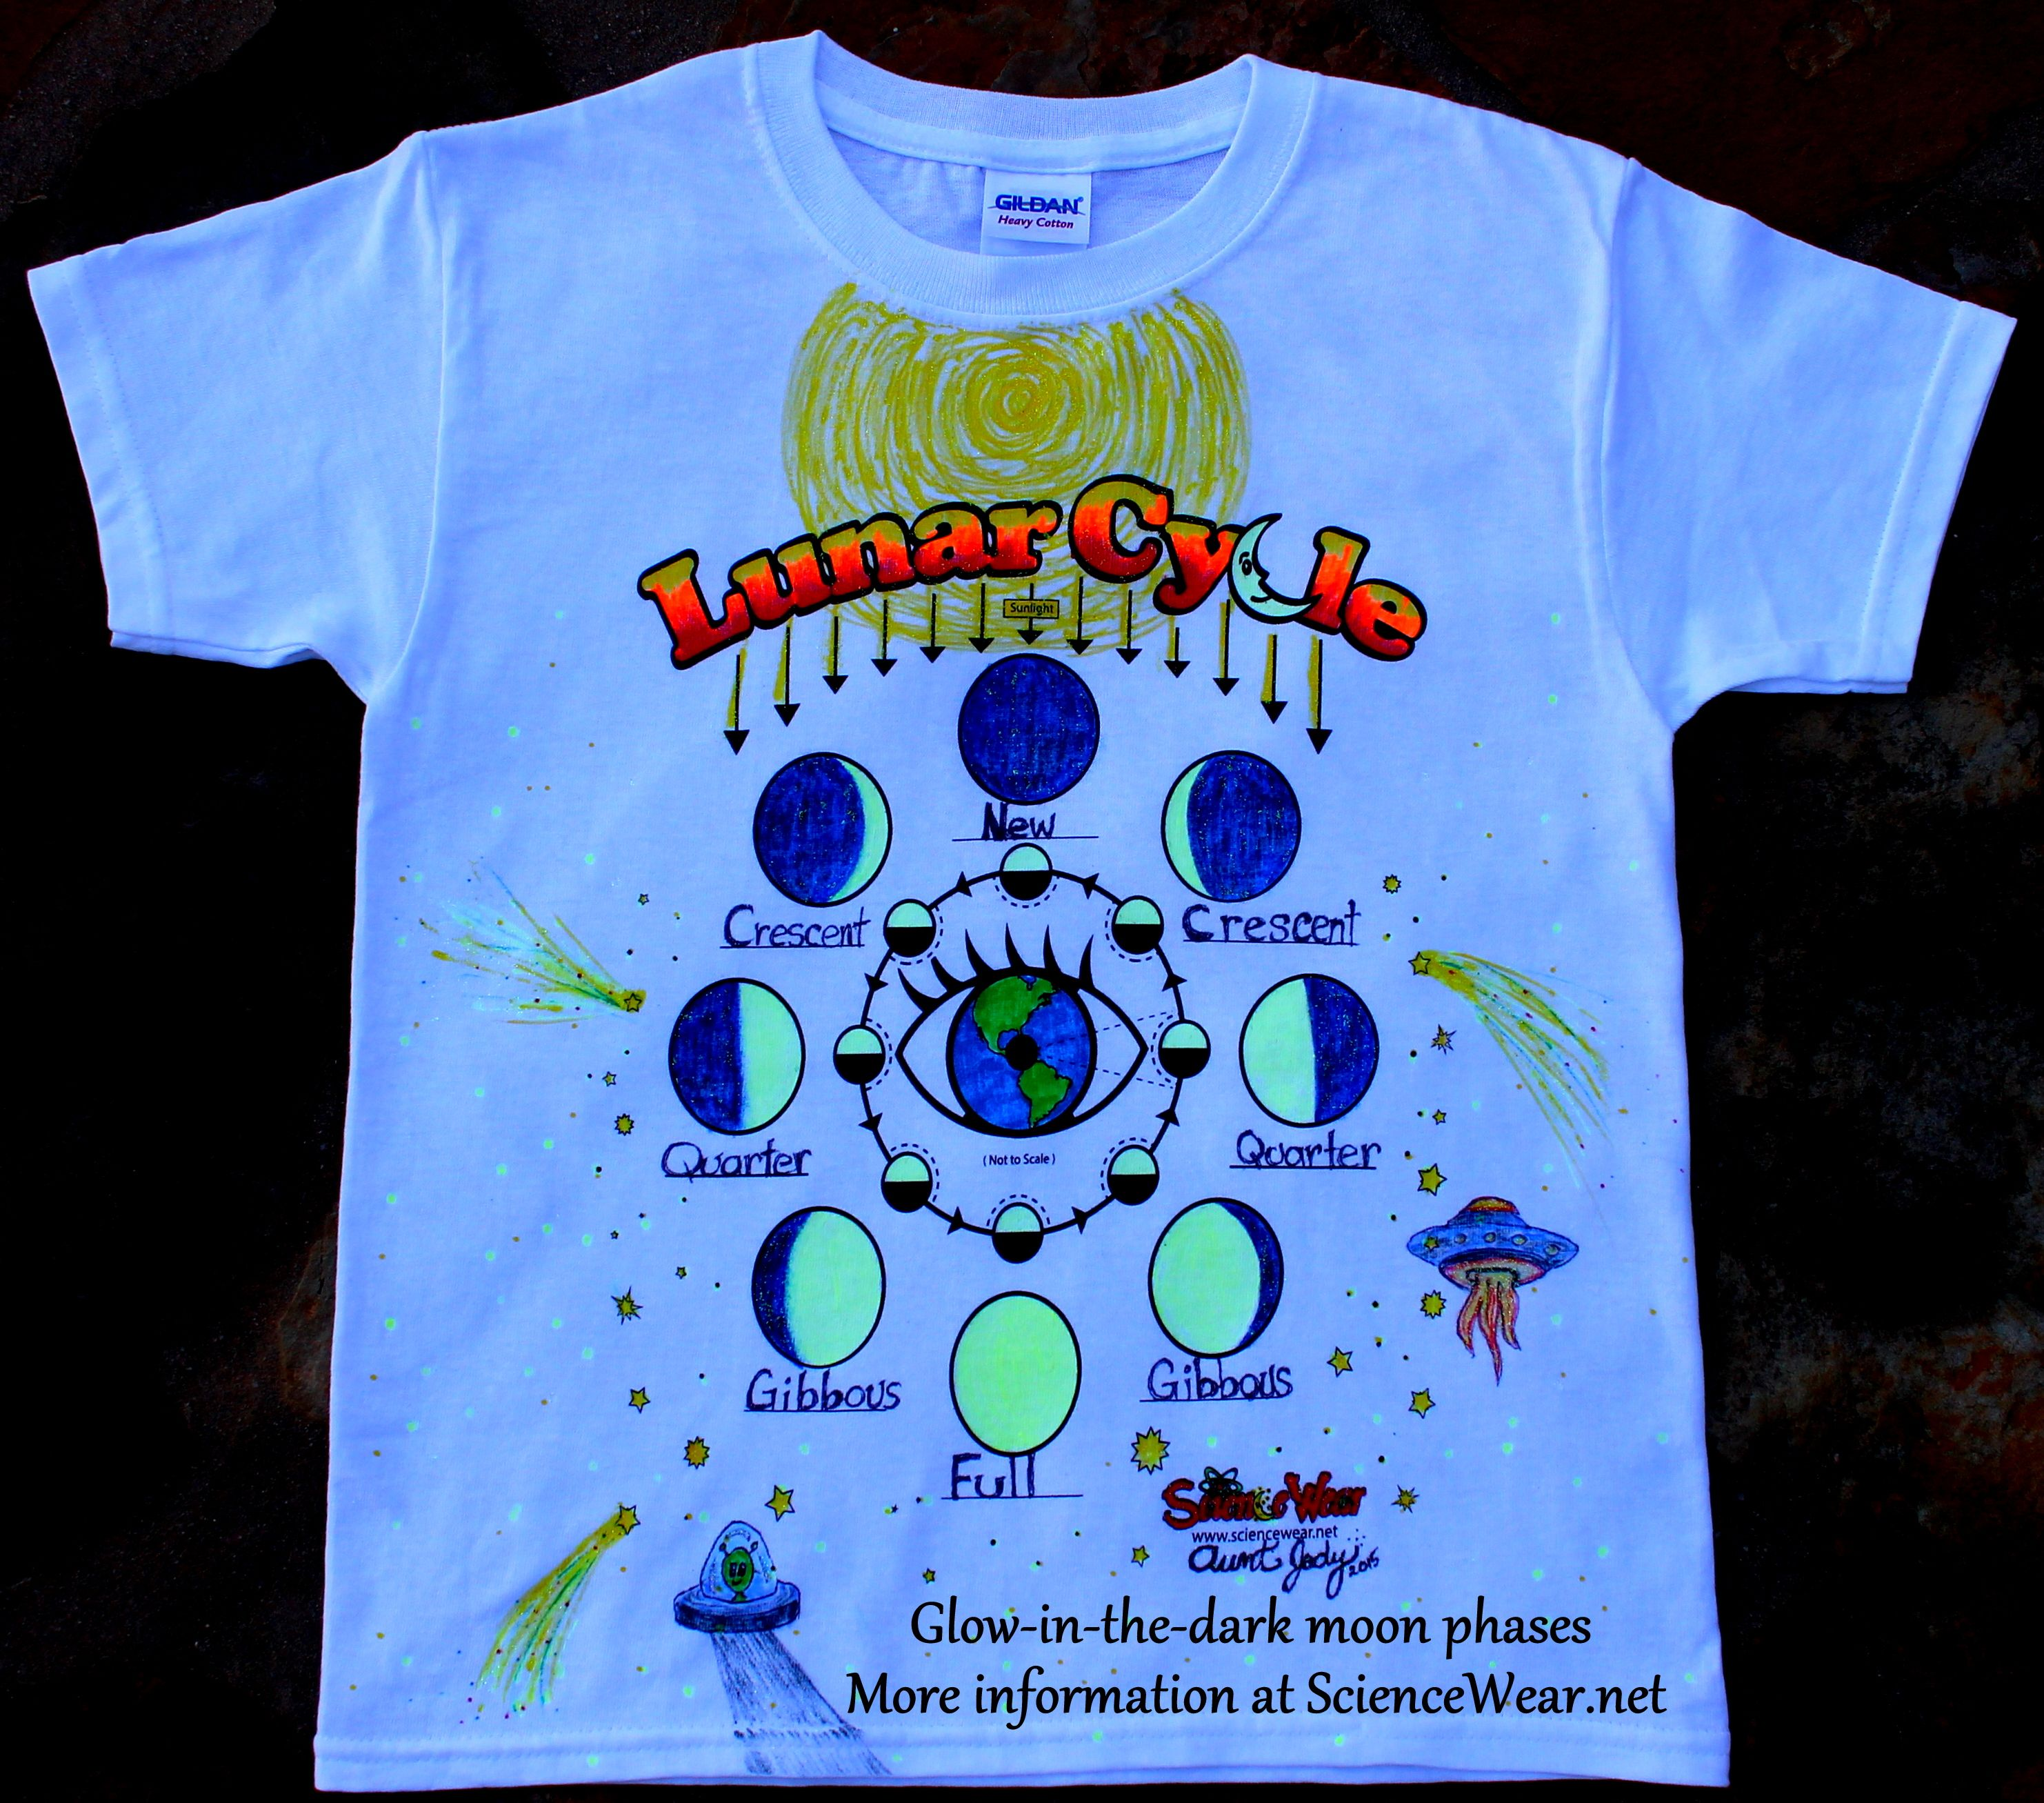 Moon phases class project paint this lunar cycle t shirt with have your students each make their own wearable moon phases shirt from sciencewear and gamestrikefo Image collections